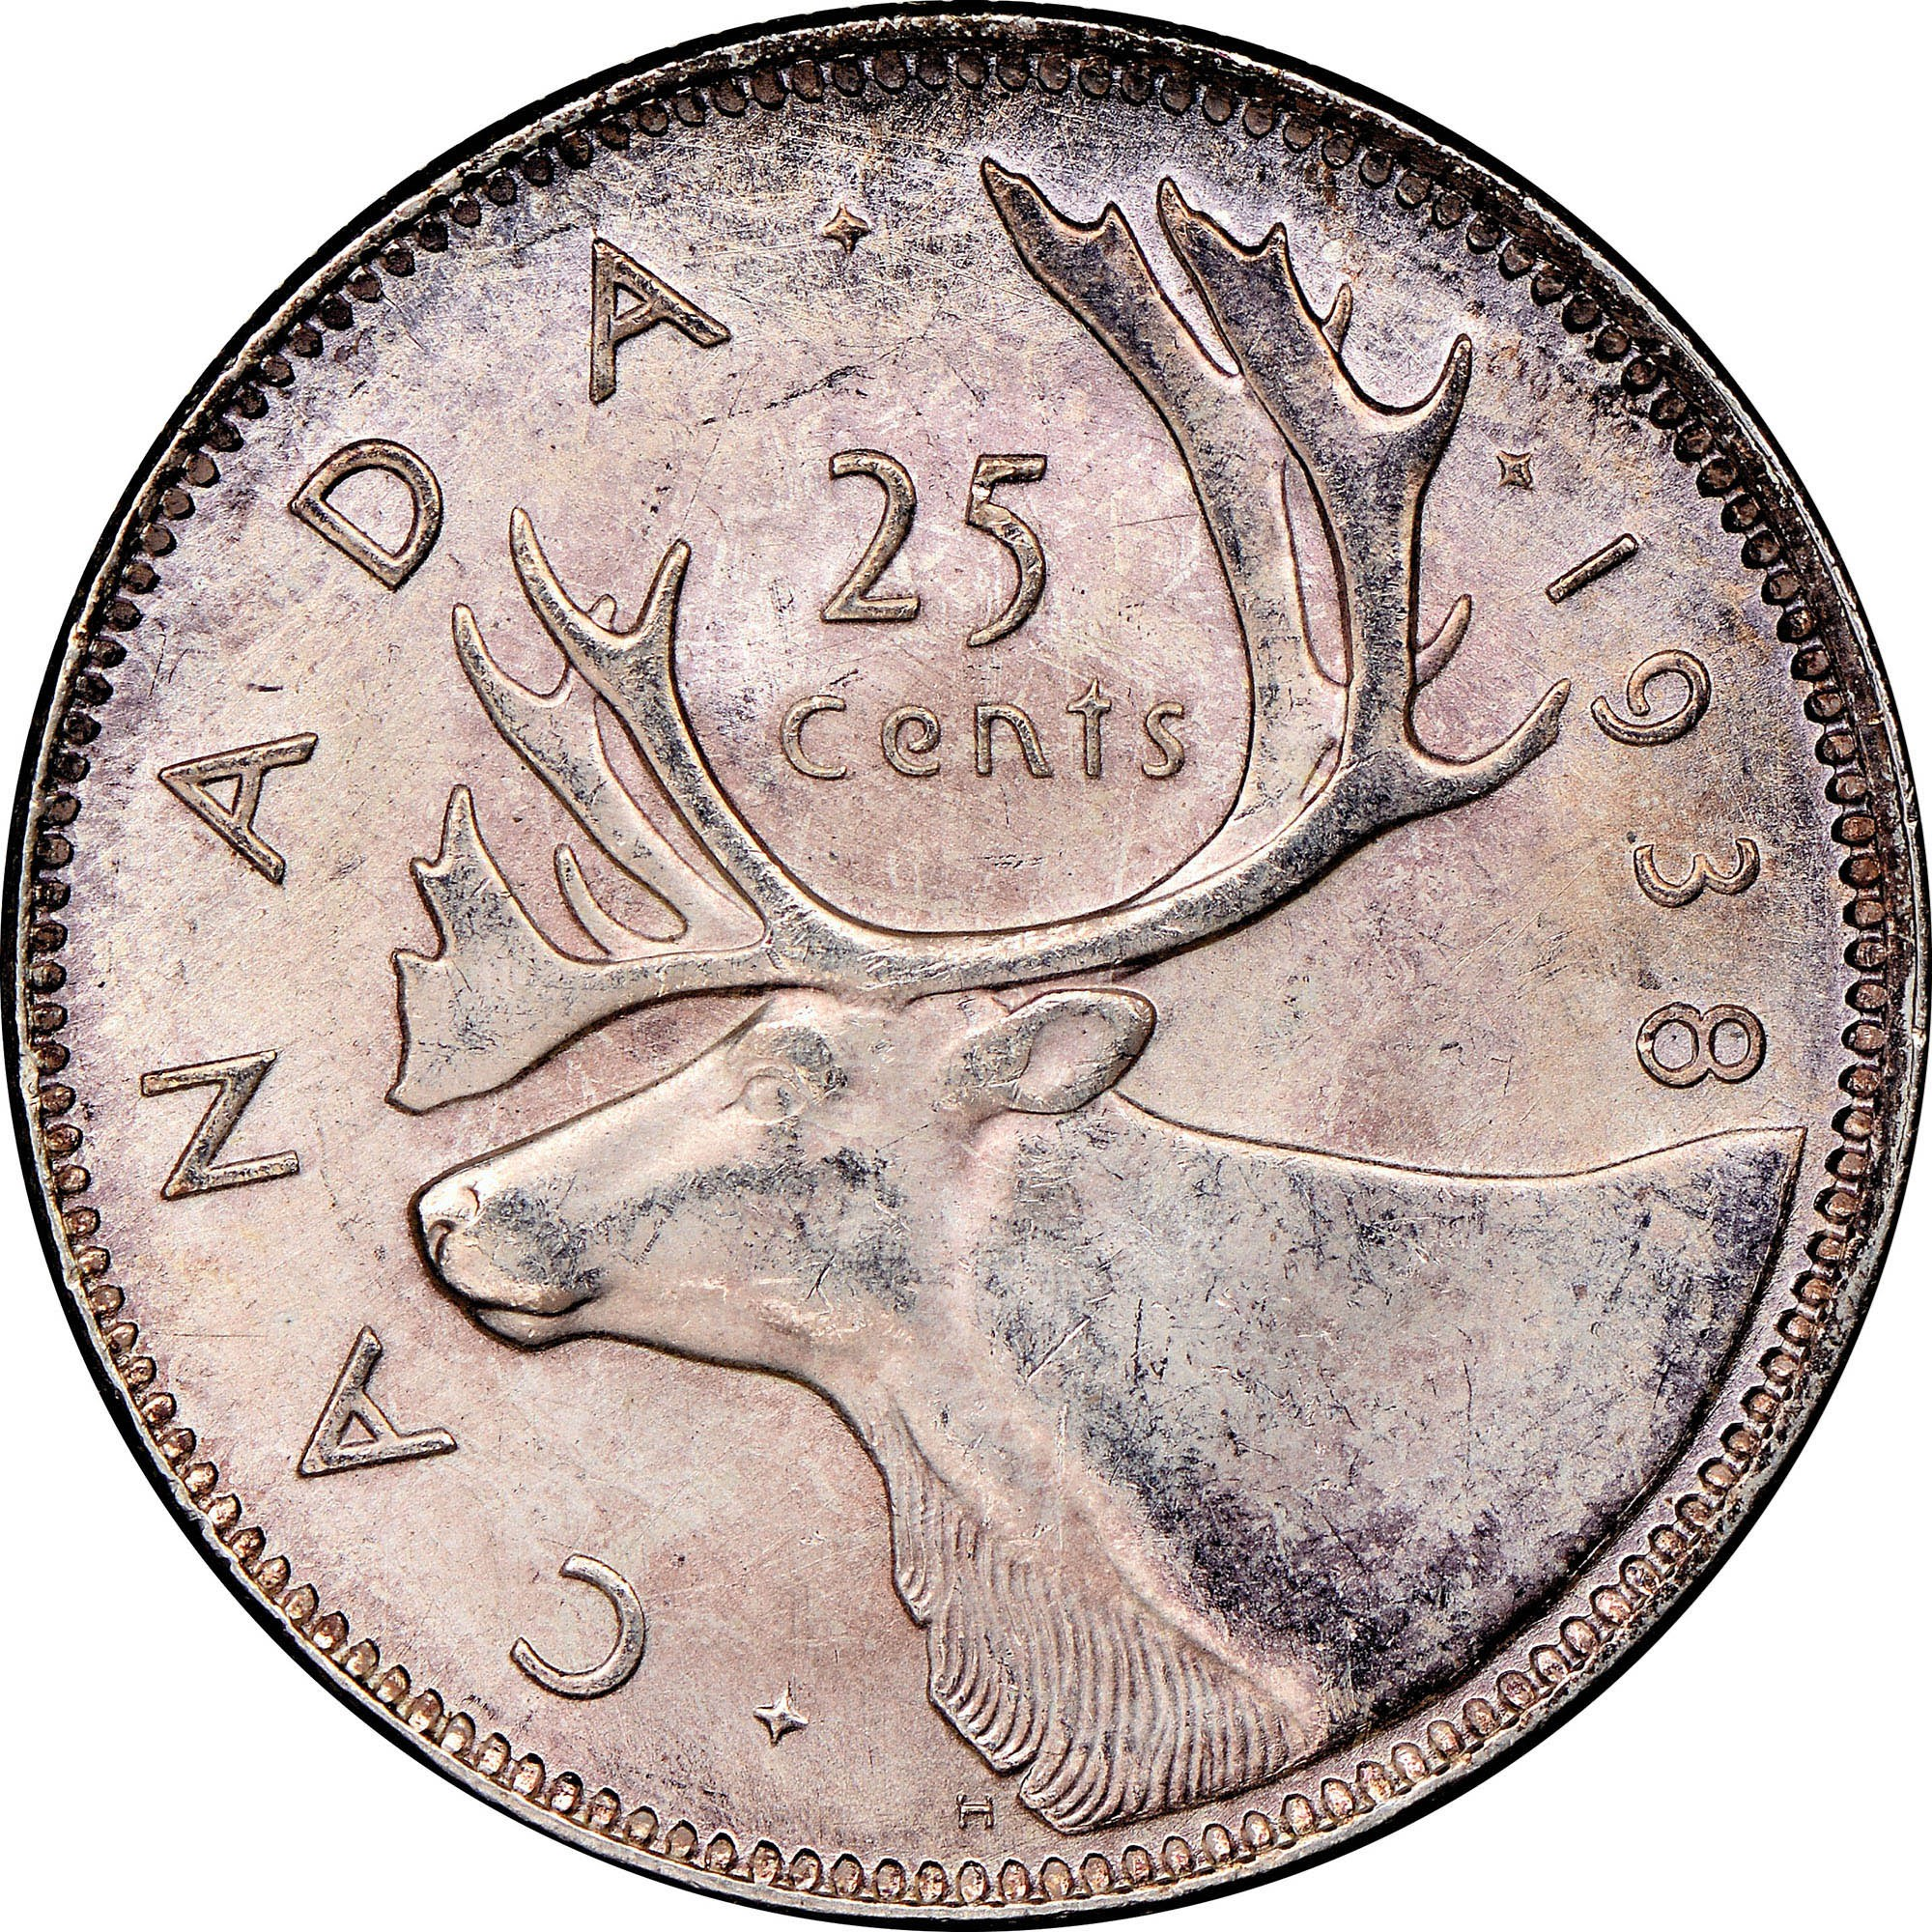 Canada 25 Cents reverse